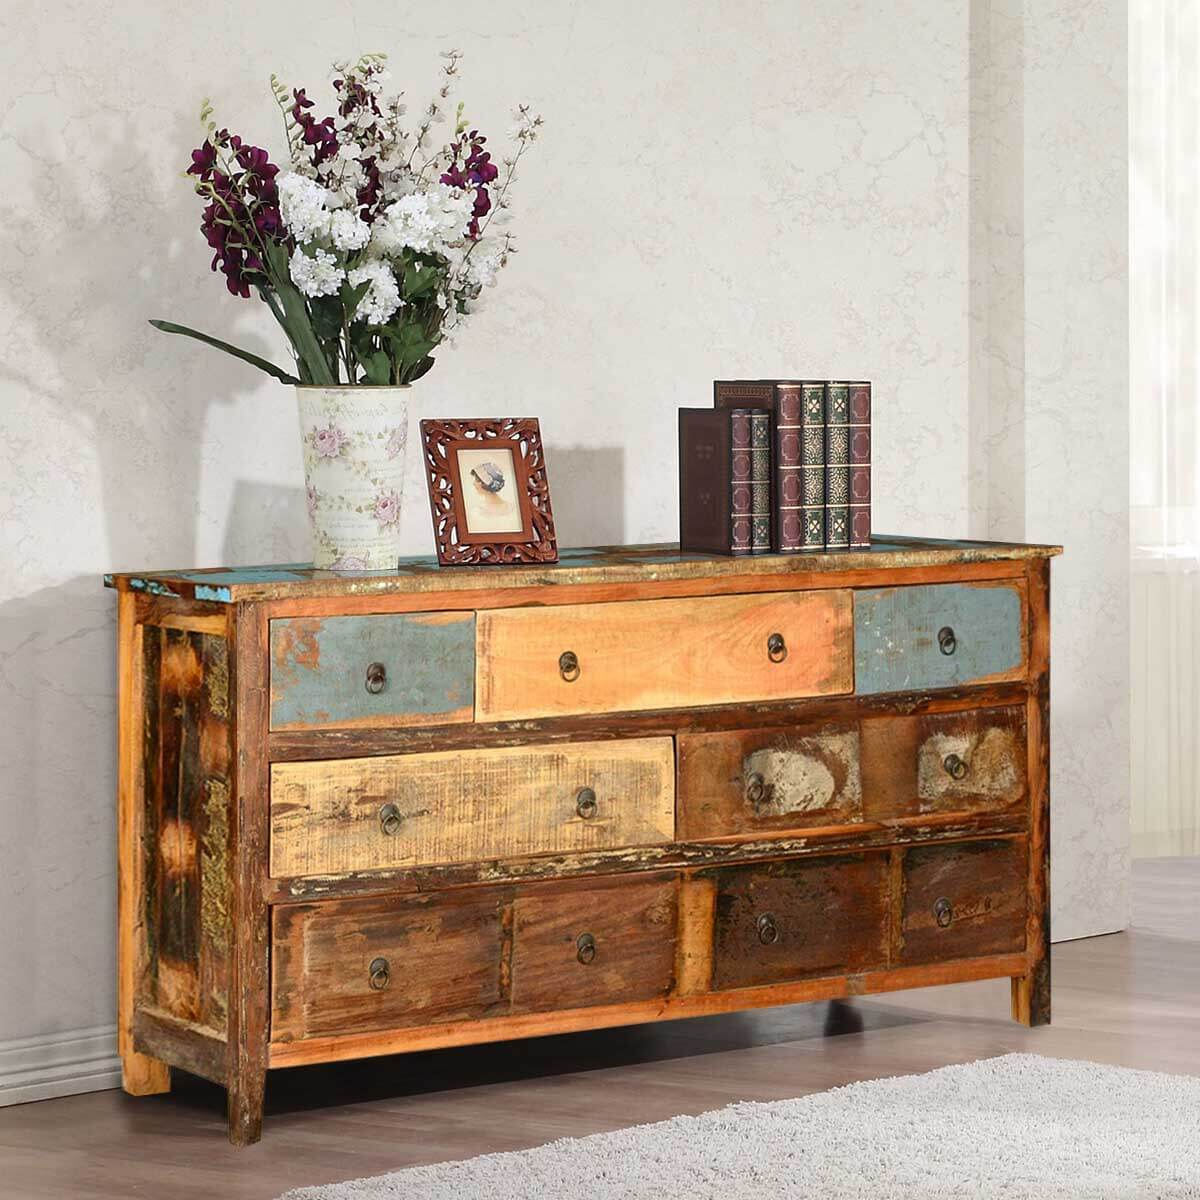 Appalachian Rustic Distressed Reclaimed Wood 7 Drawer Dresser